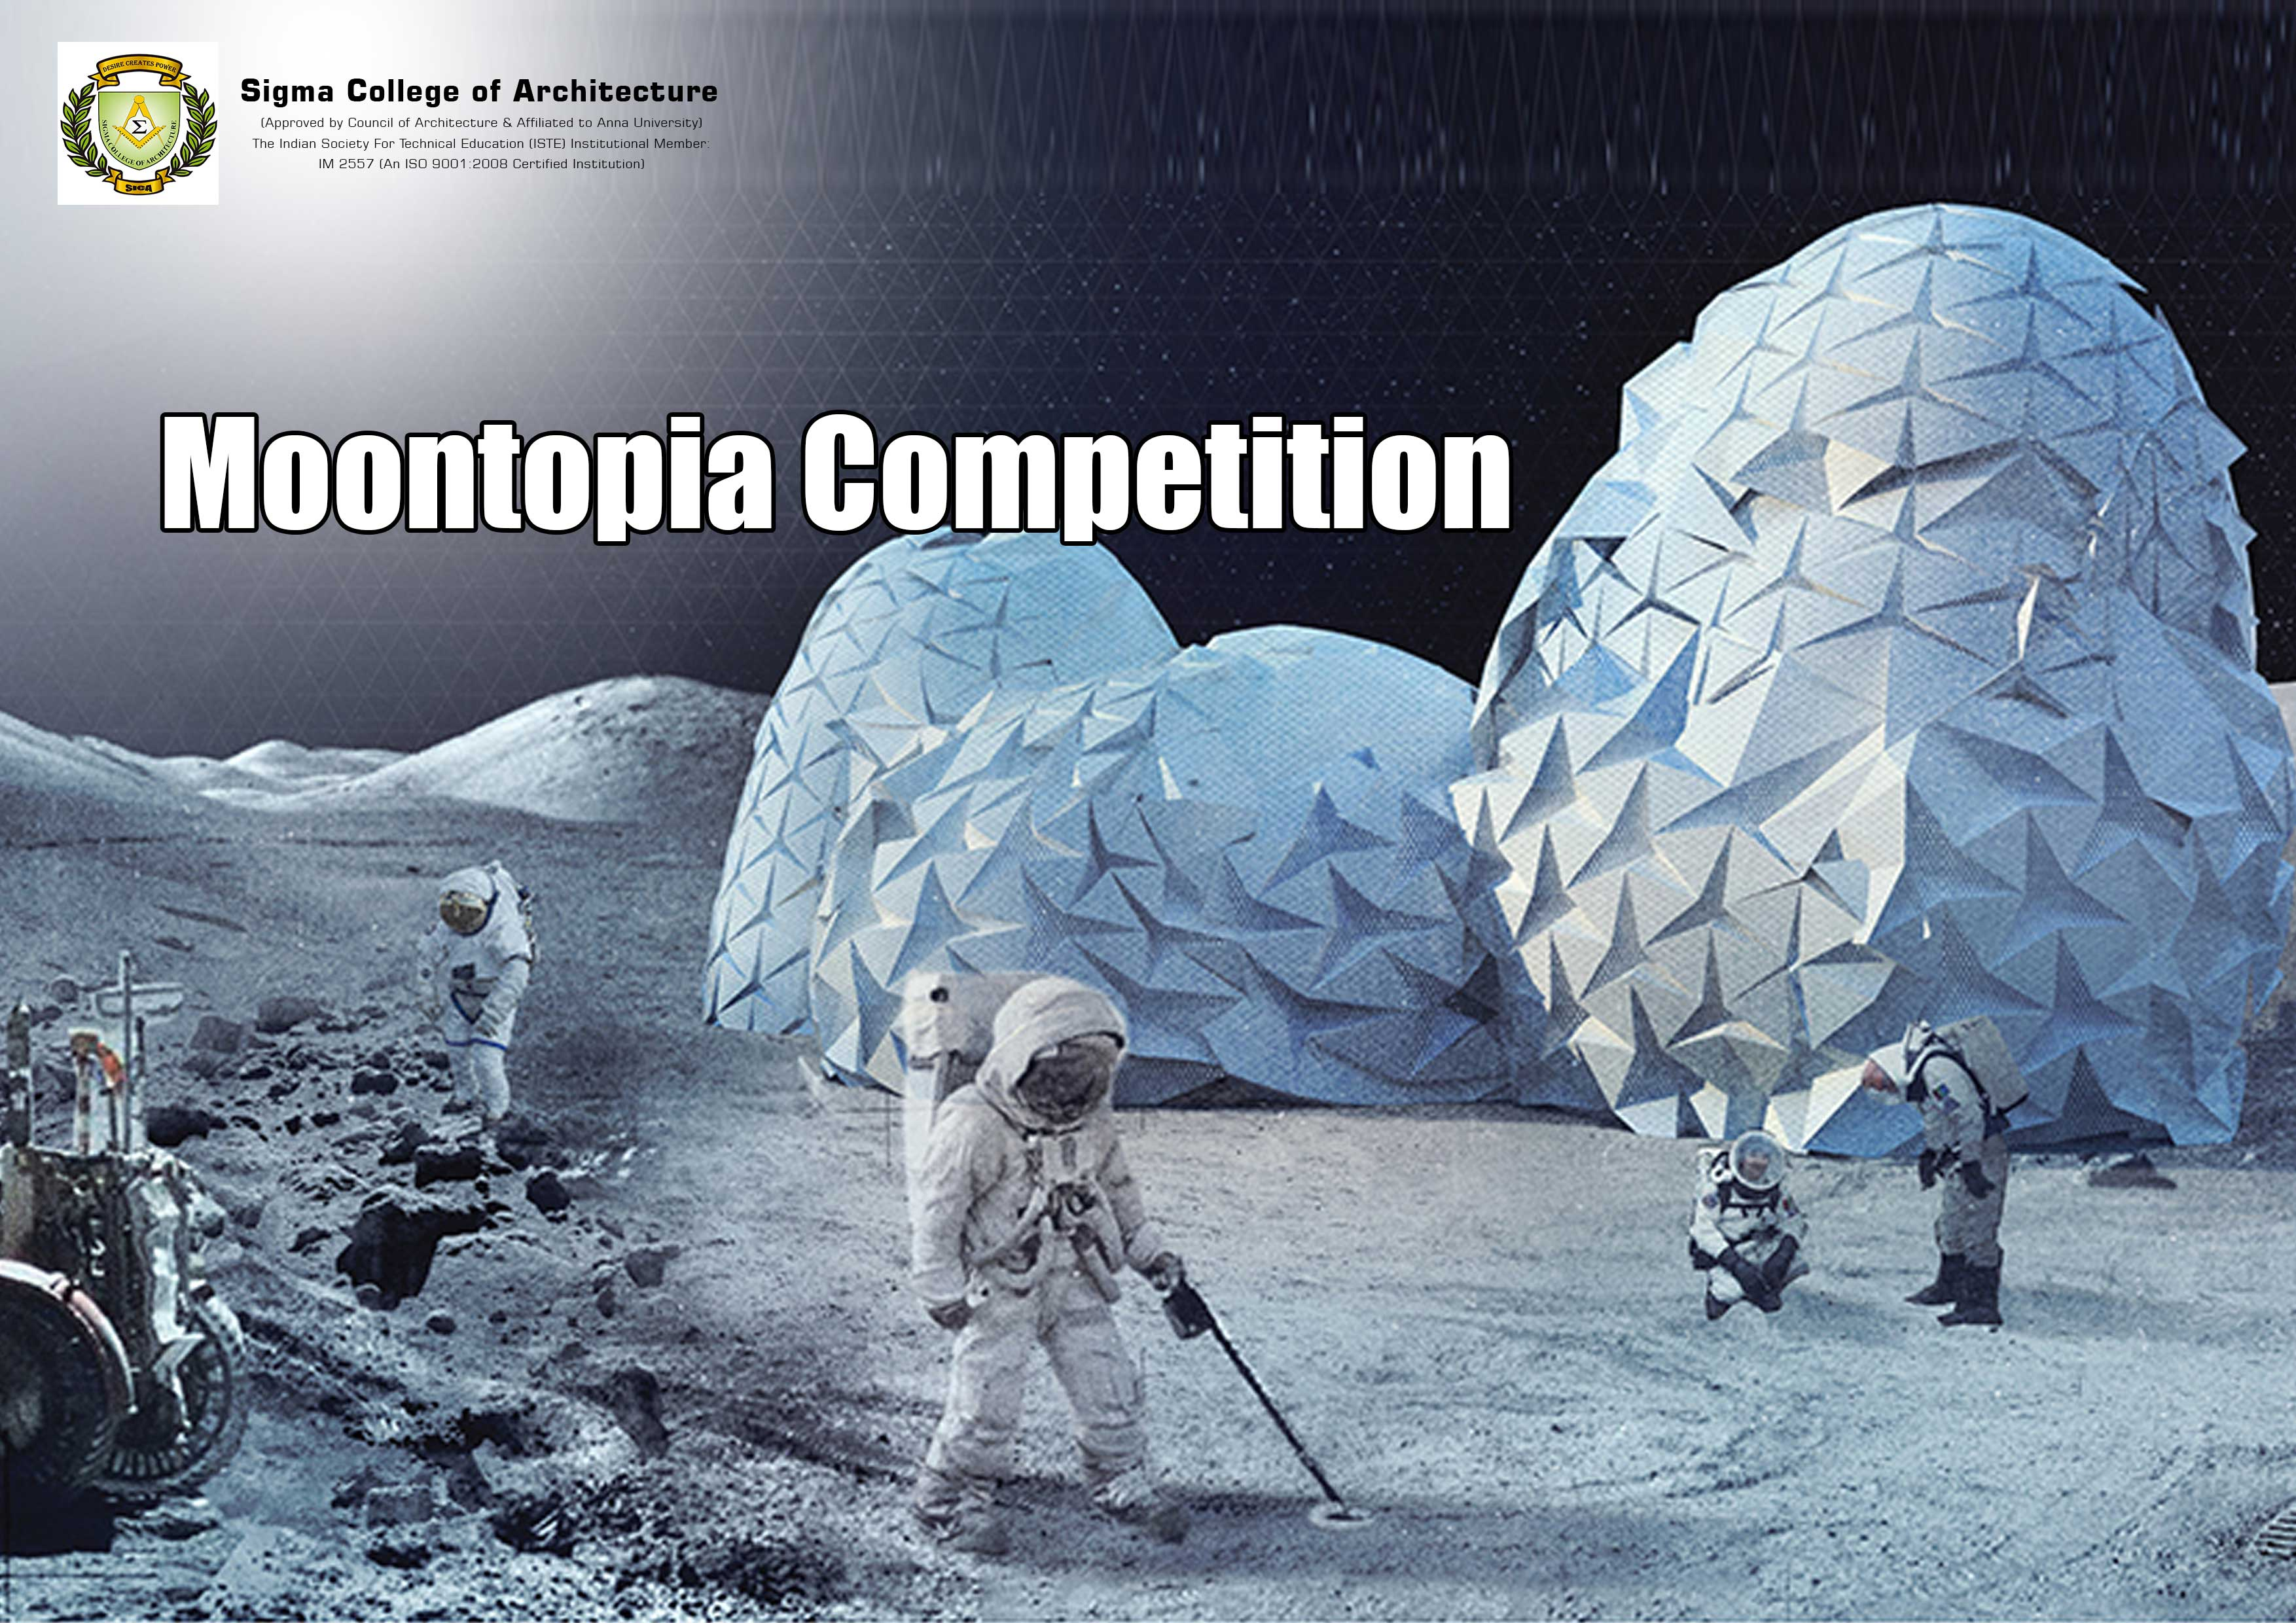 Moontopia Competition